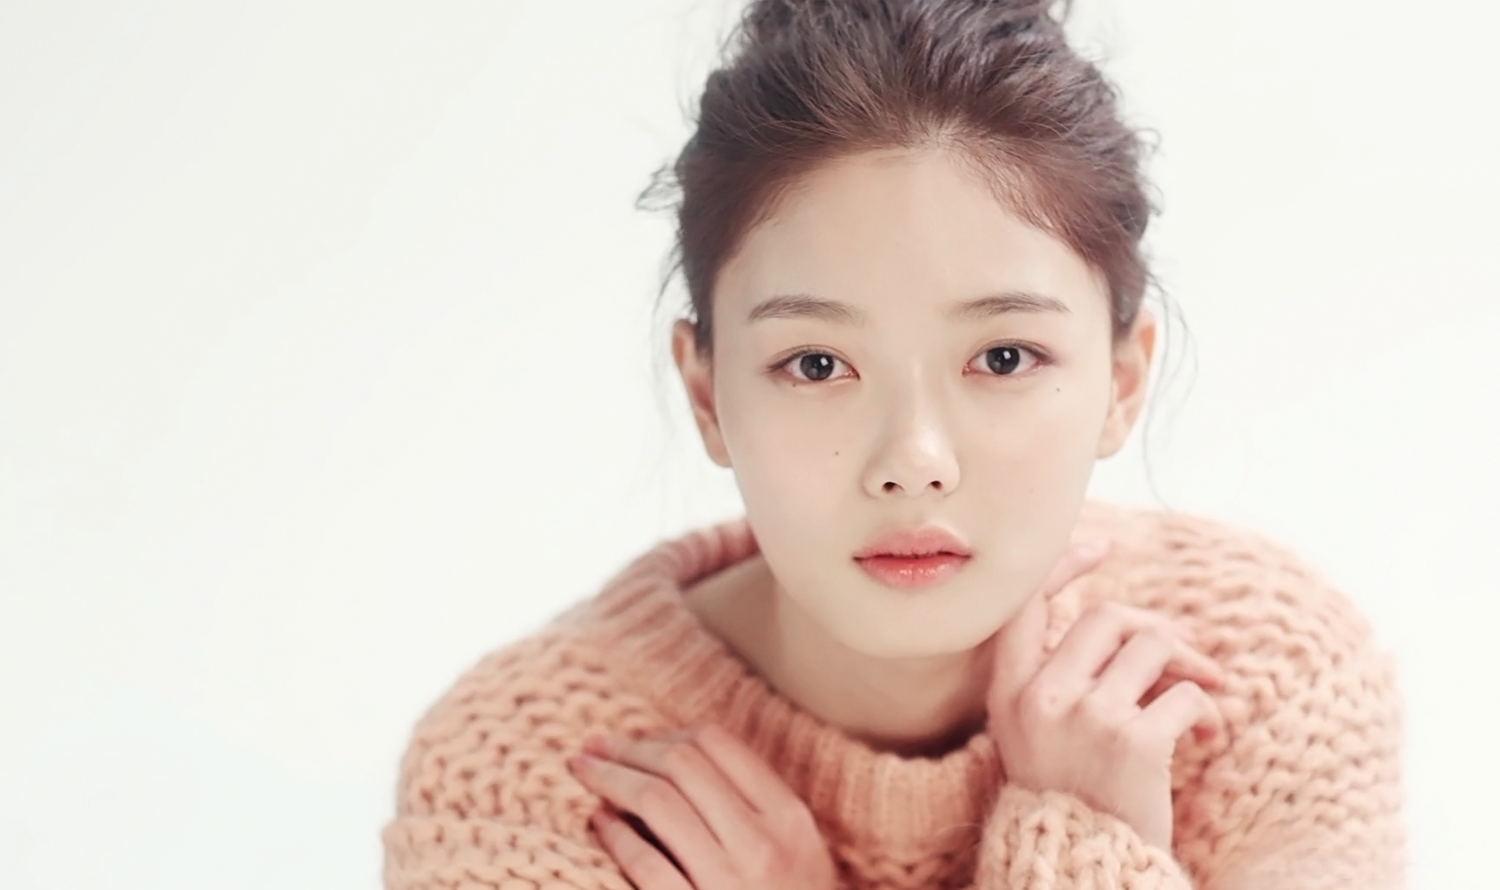 Kim Yoo Jung Criticized For Allegedly Rude Behavior While On Break Due To Illness